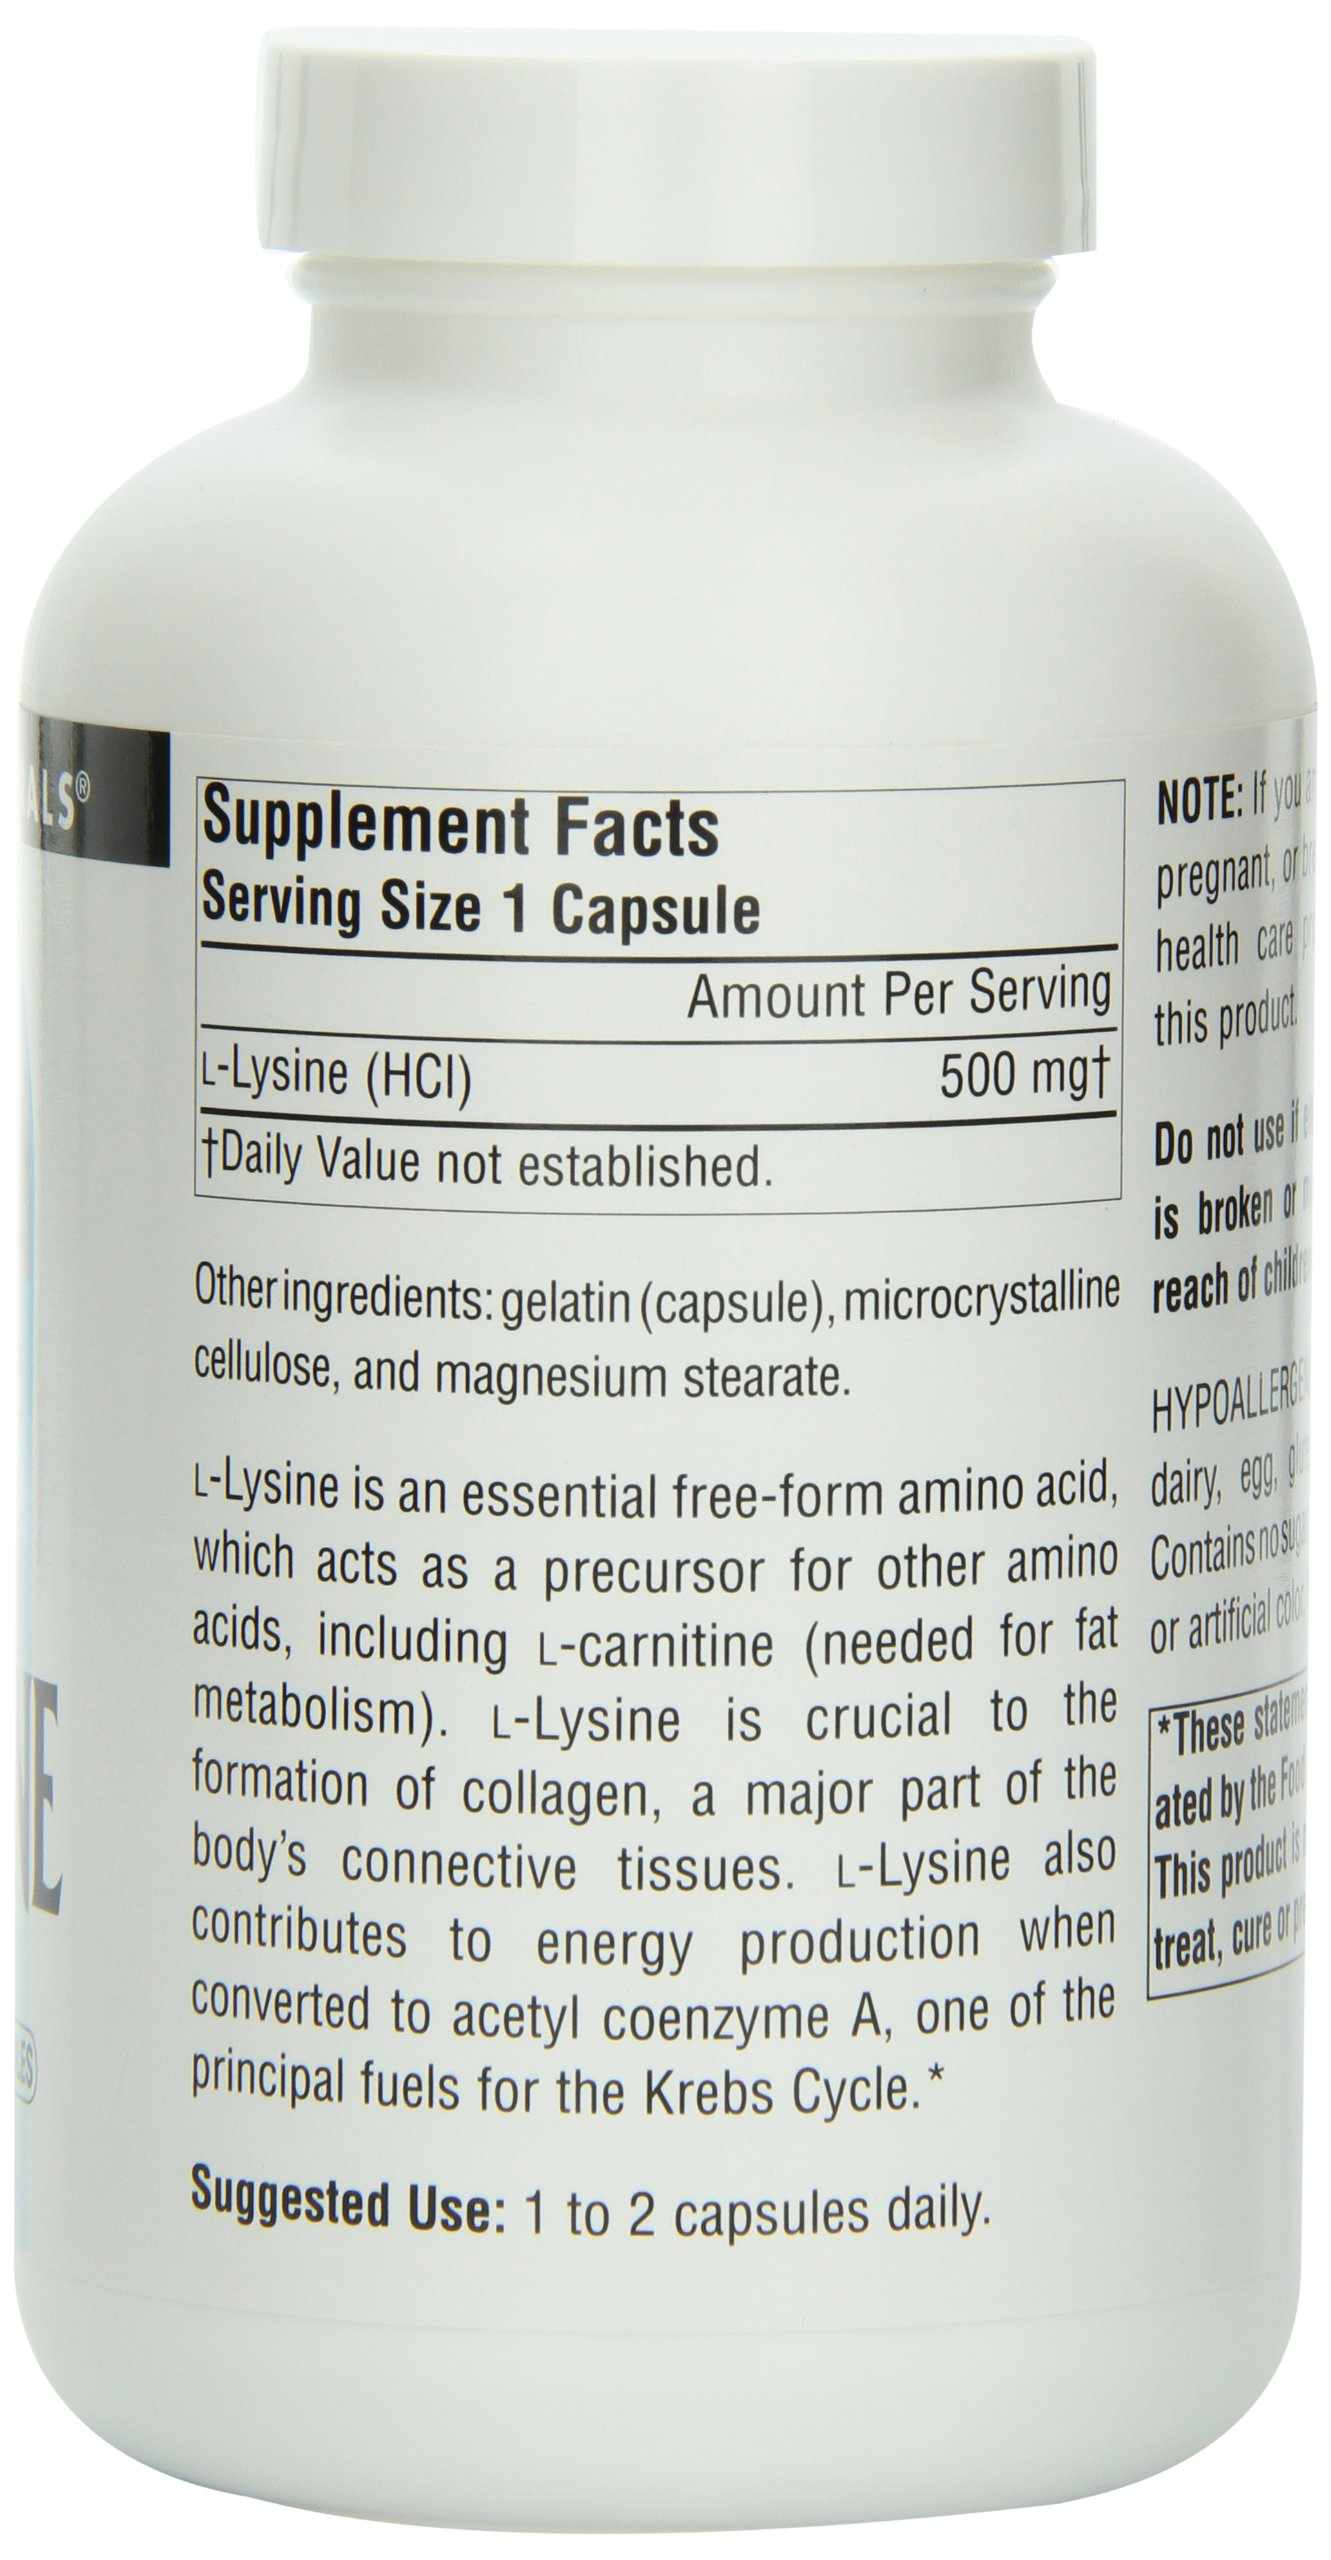 Source Naturals L-Lysine 500mg Free Form Essential Amino Acid Supports Calcium Absorption Supplement - 200 Capsules